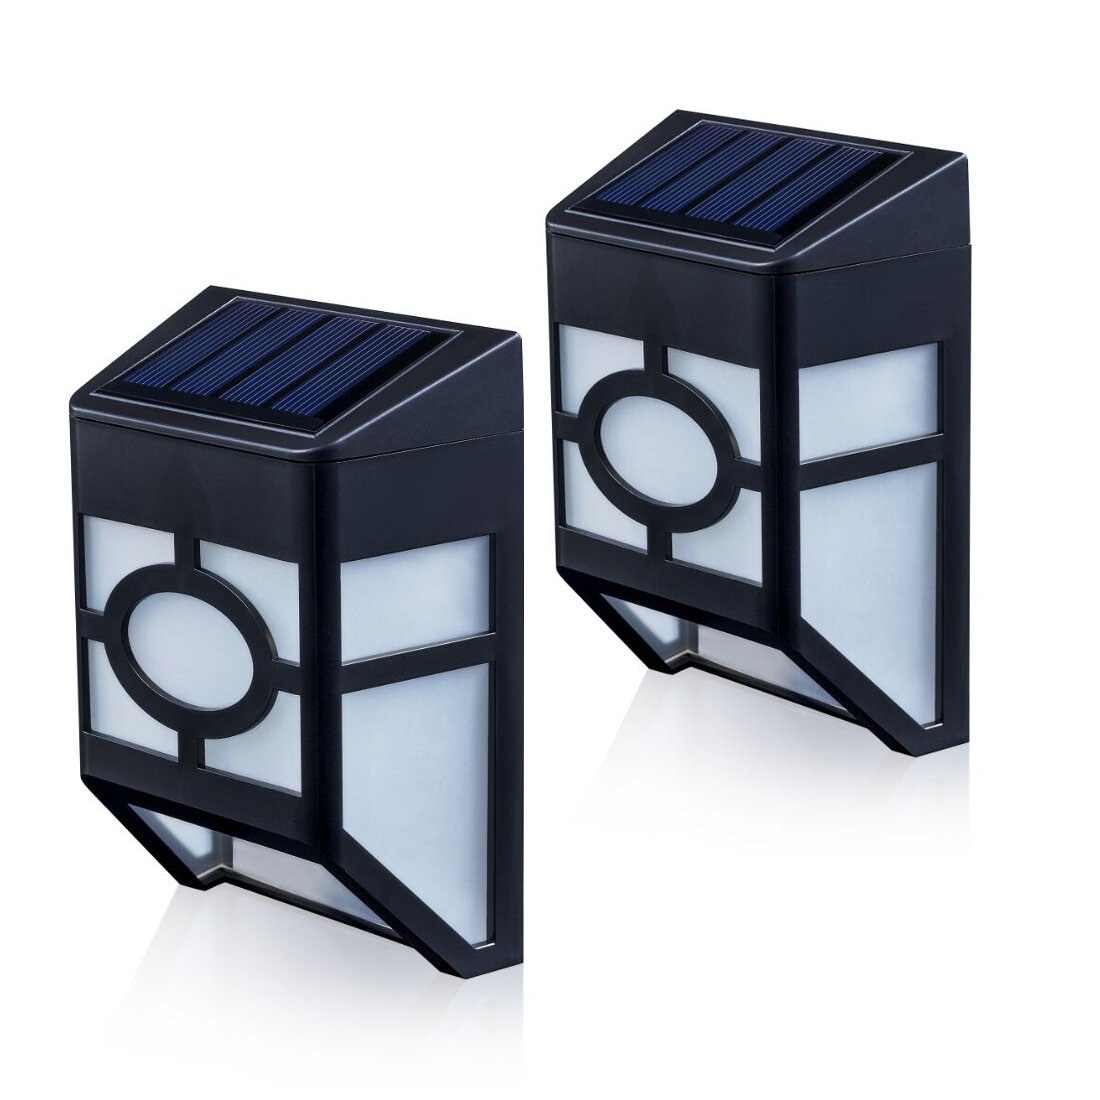 XLUX [Warm Light] S55 Solar Powered Lights for House Outdoor Landscape Garden Fence Lamp, Soft White, 2 Pack